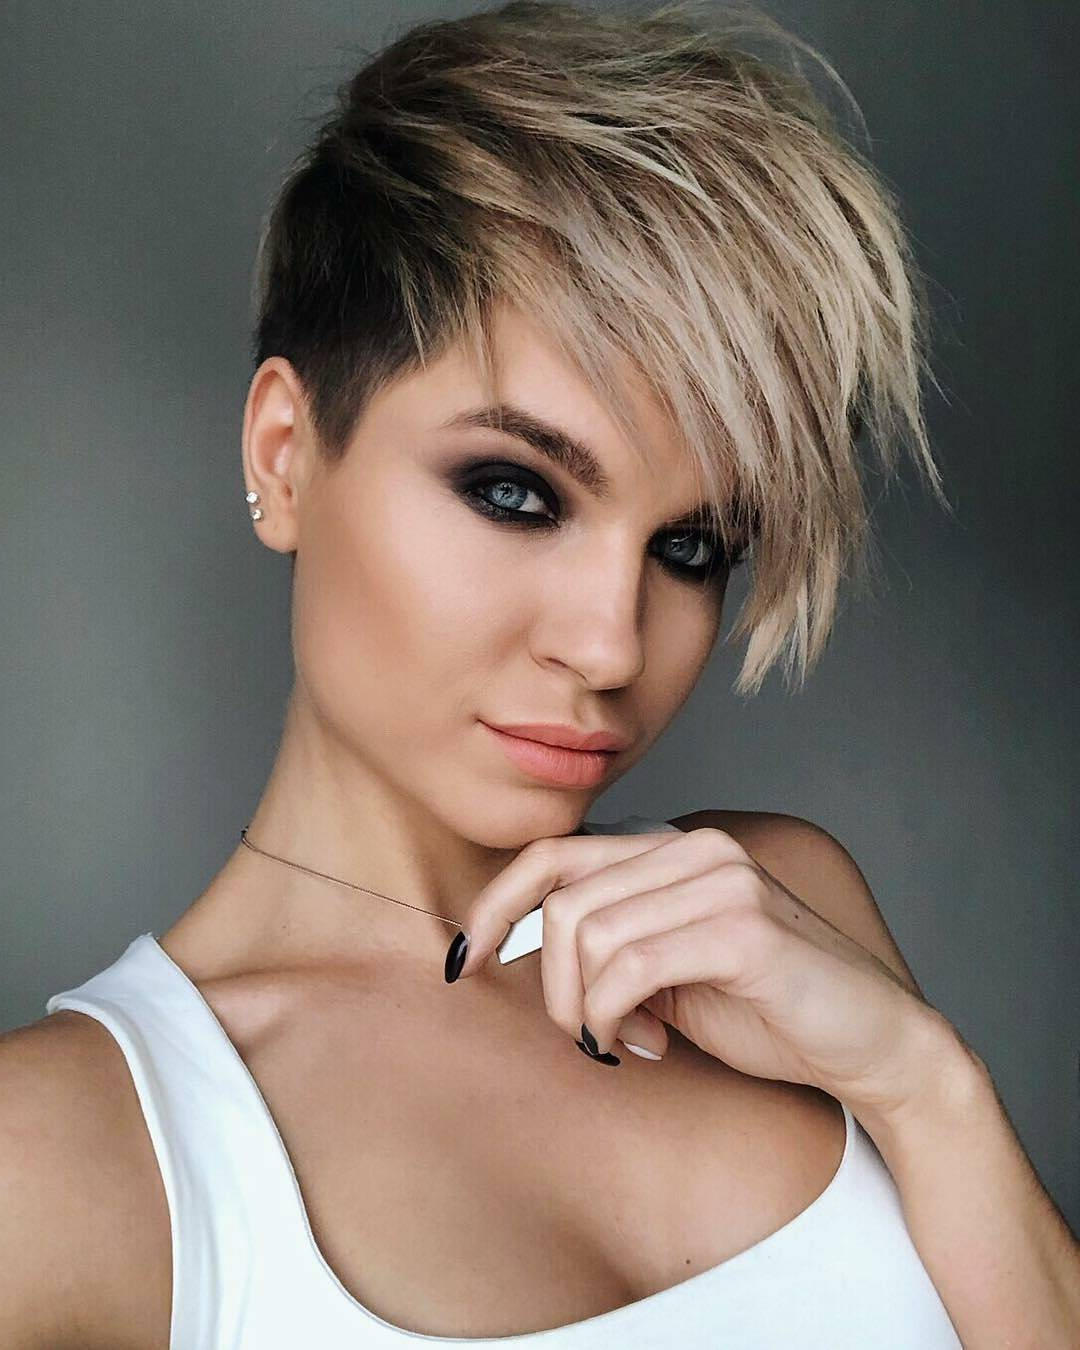 10 New Short Hairstyles For Thick Hair 2018, Women Haircut Ideas Regarding Edgy Short Haircuts For Thick Hair (View 22 of 25)